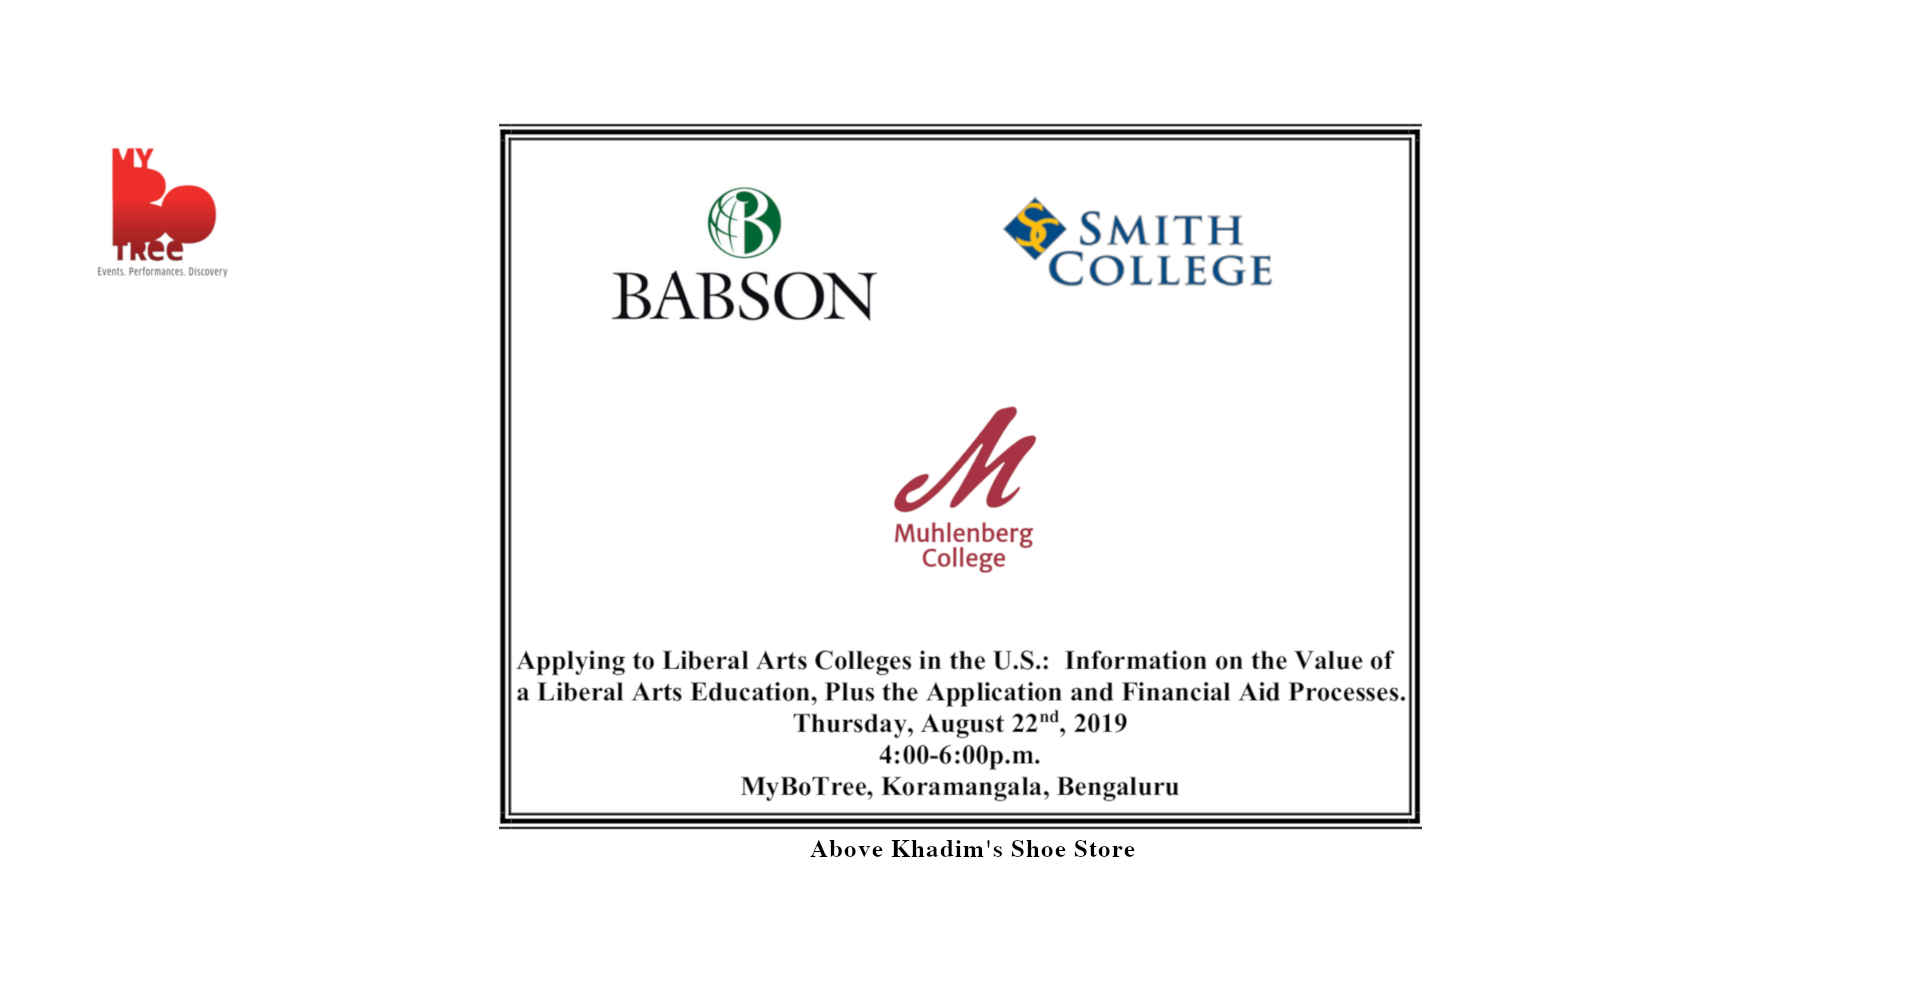 US Colleges Babson